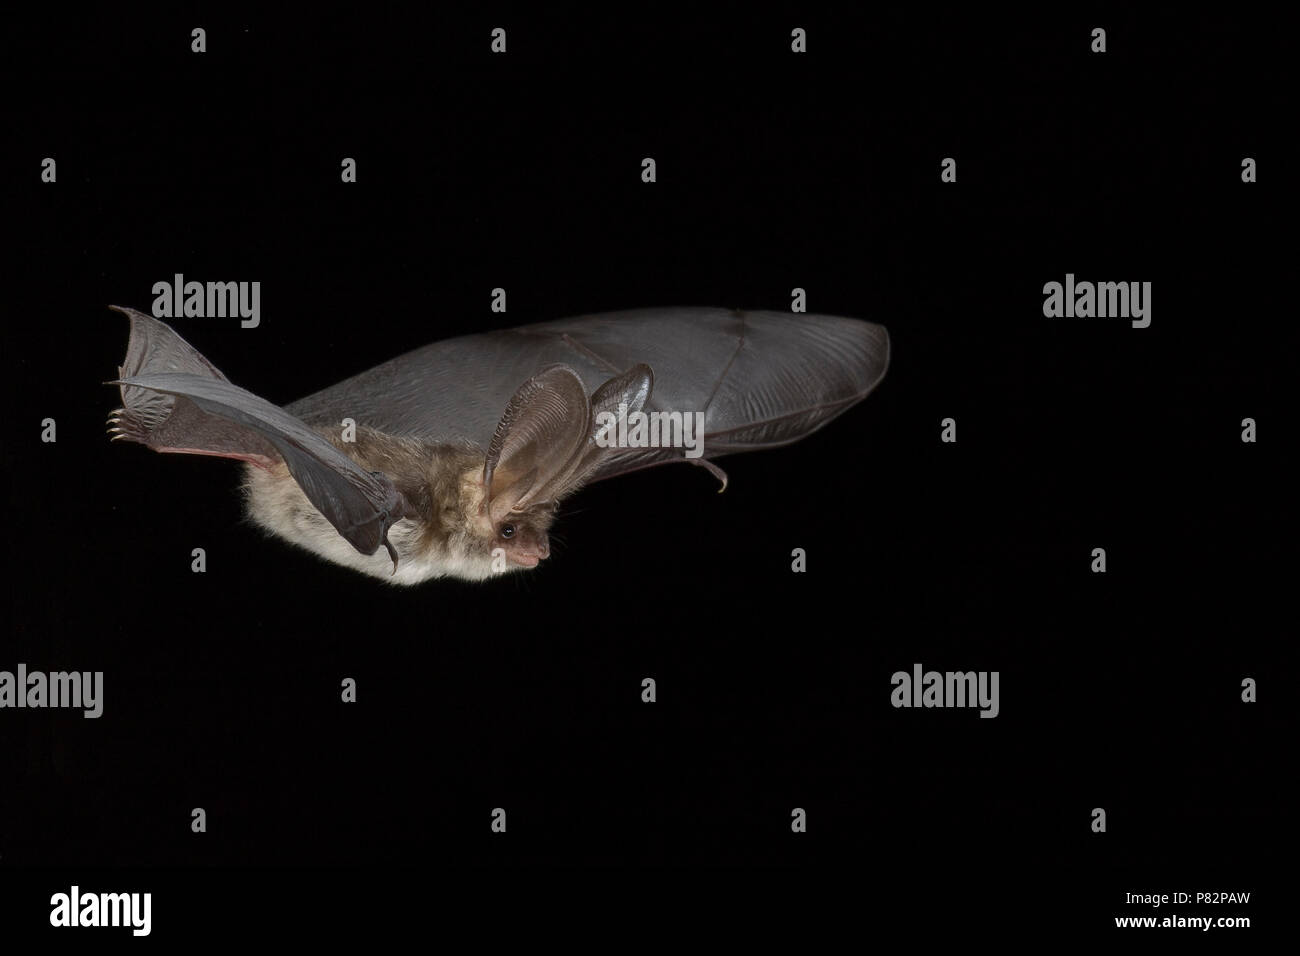 Grijze grootoorvleermuis vliegend; Grey long-eared bat flying - Stock Image